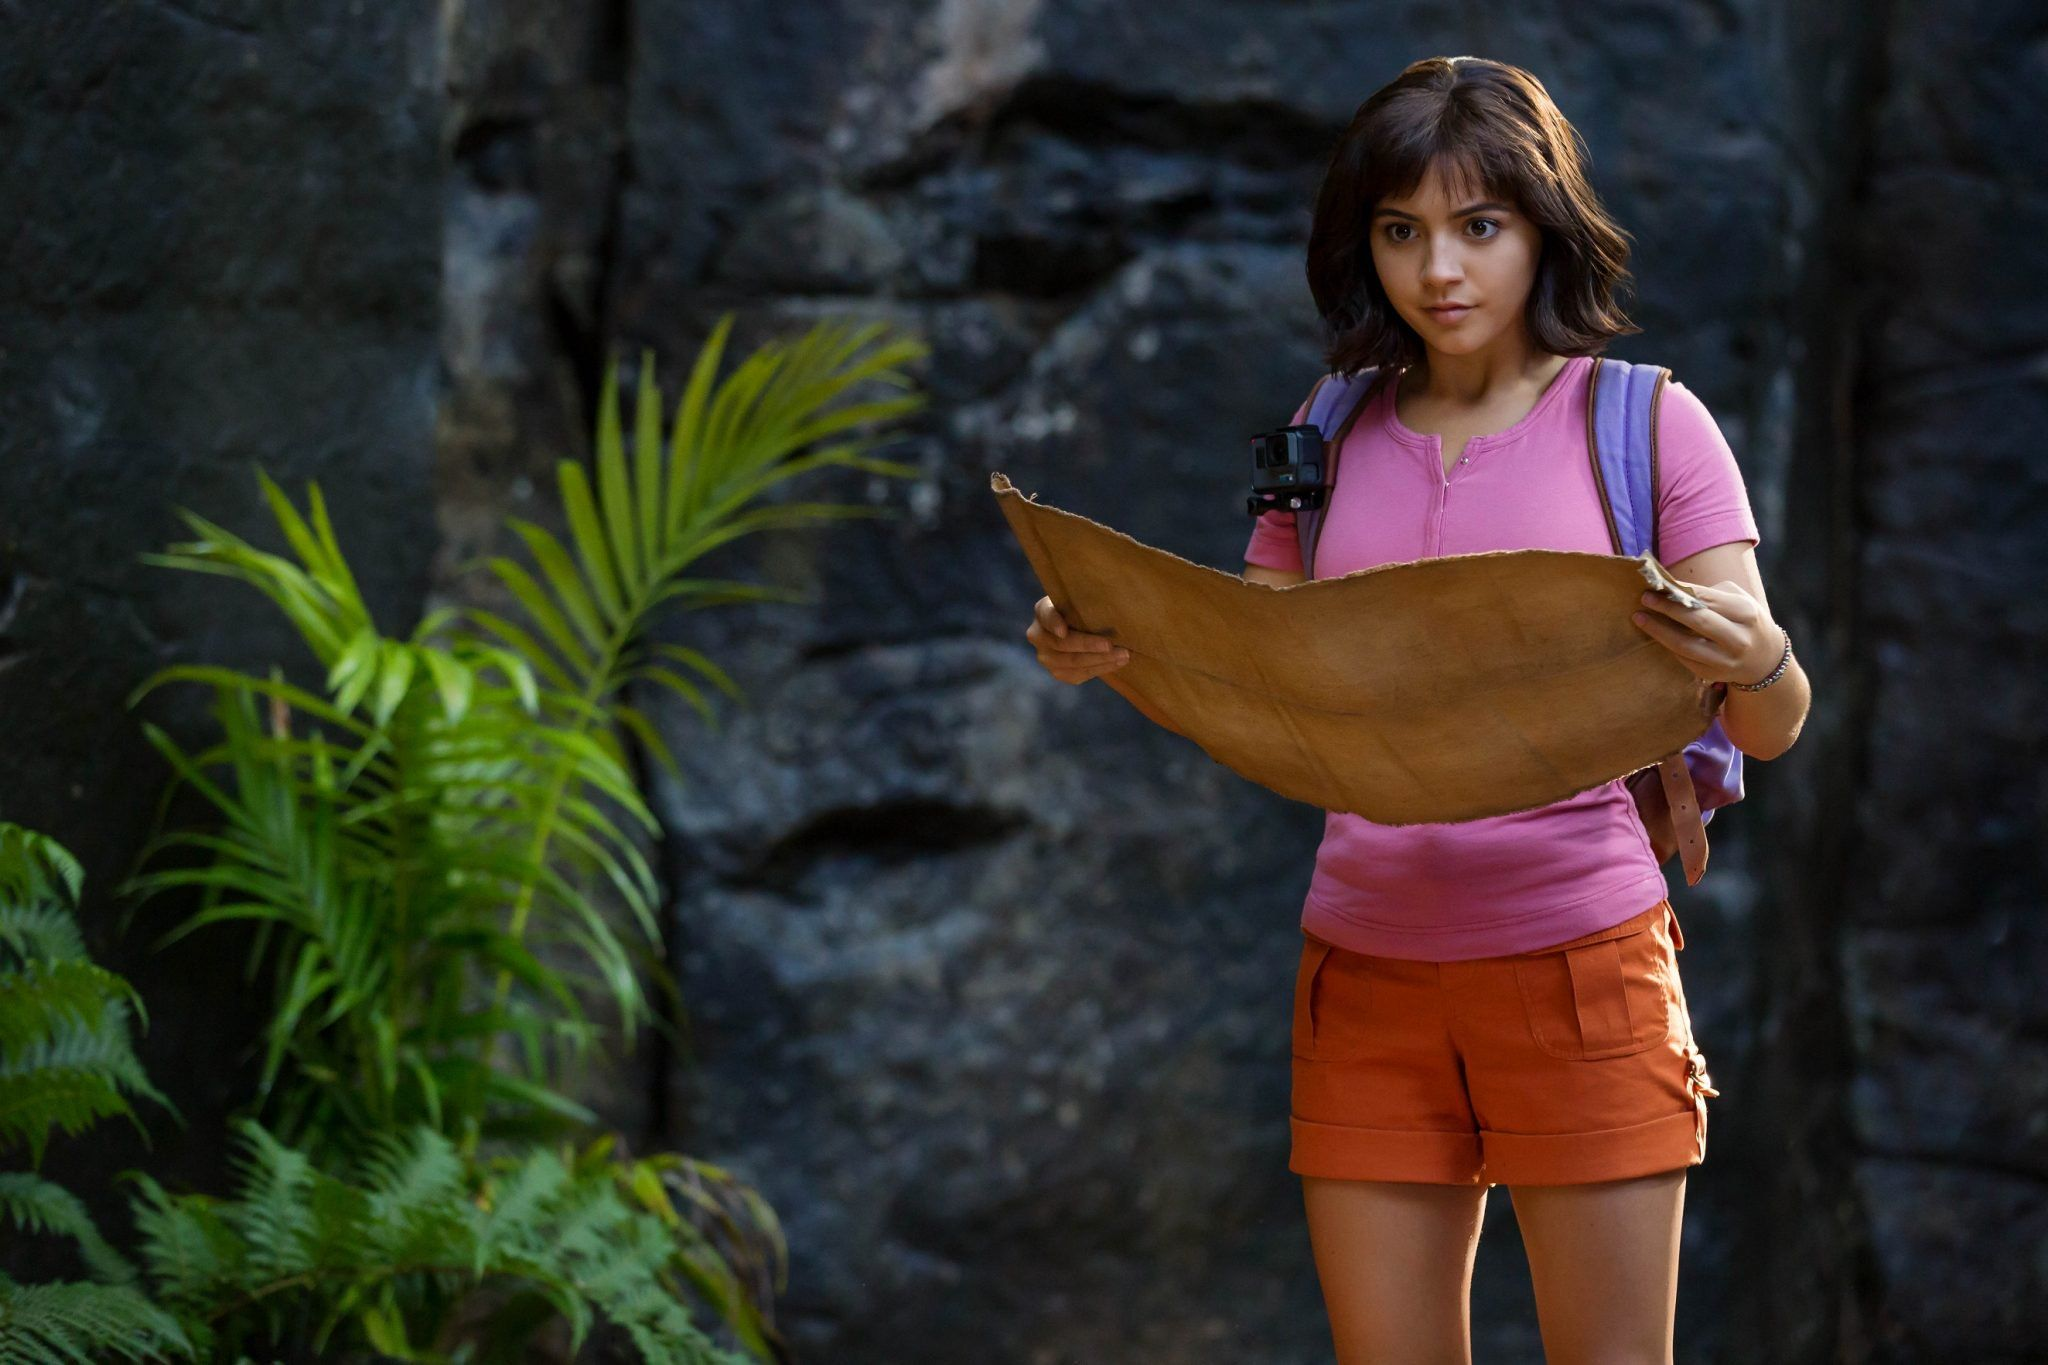 American Sex Movie Online dora and the lost city of gold (2019) photo | lost city of